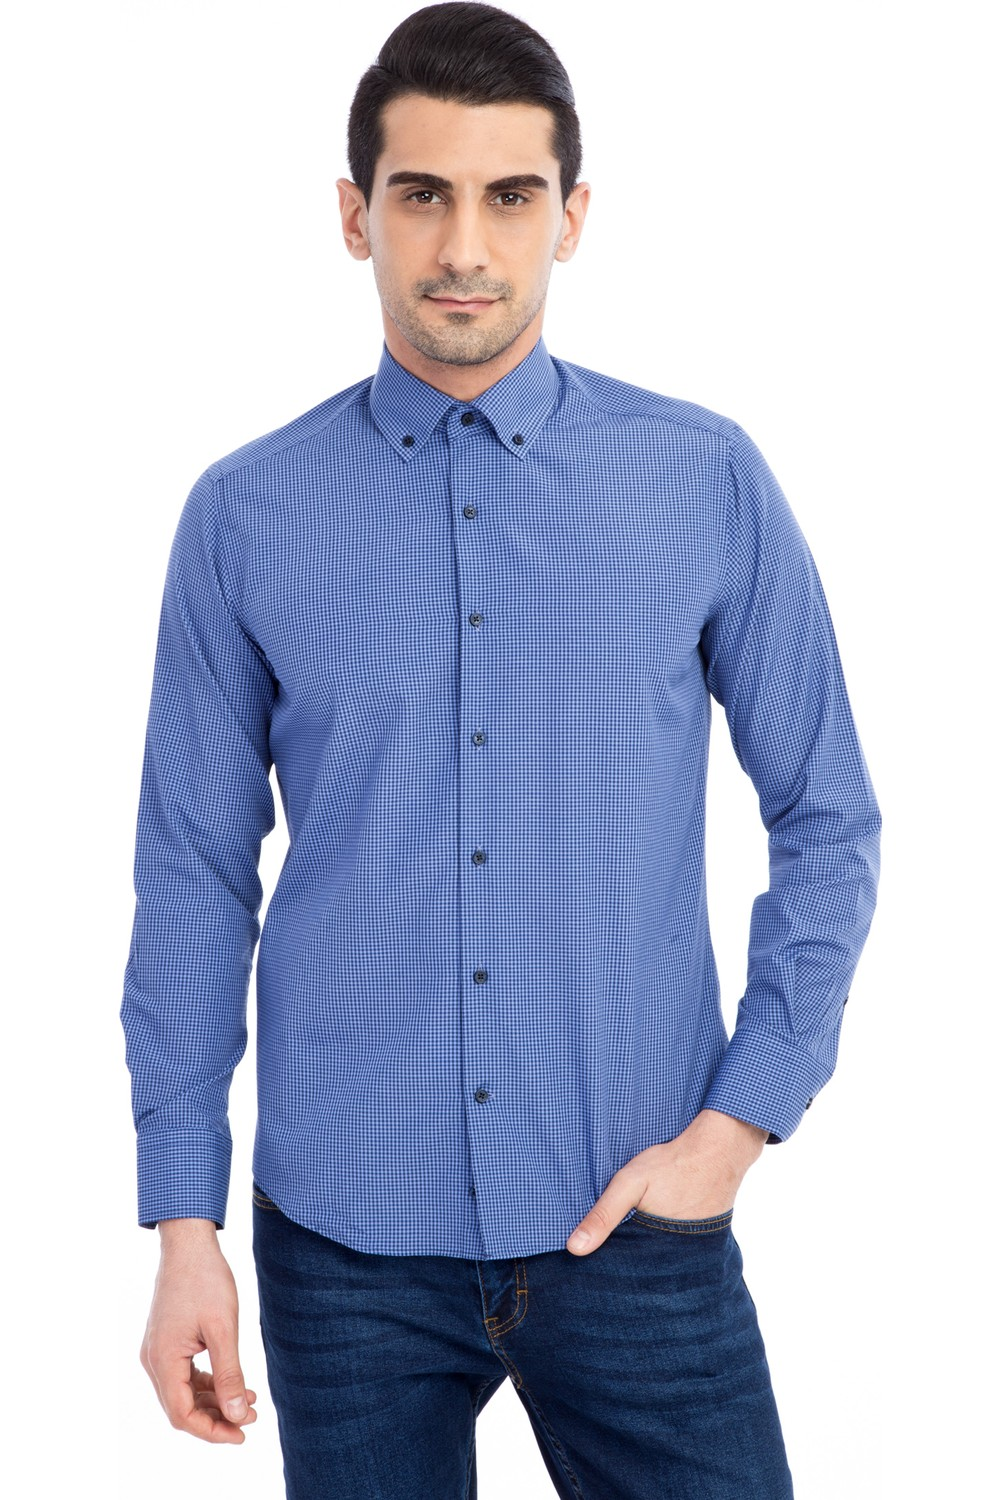 Kigili Men's Checkered Shirt